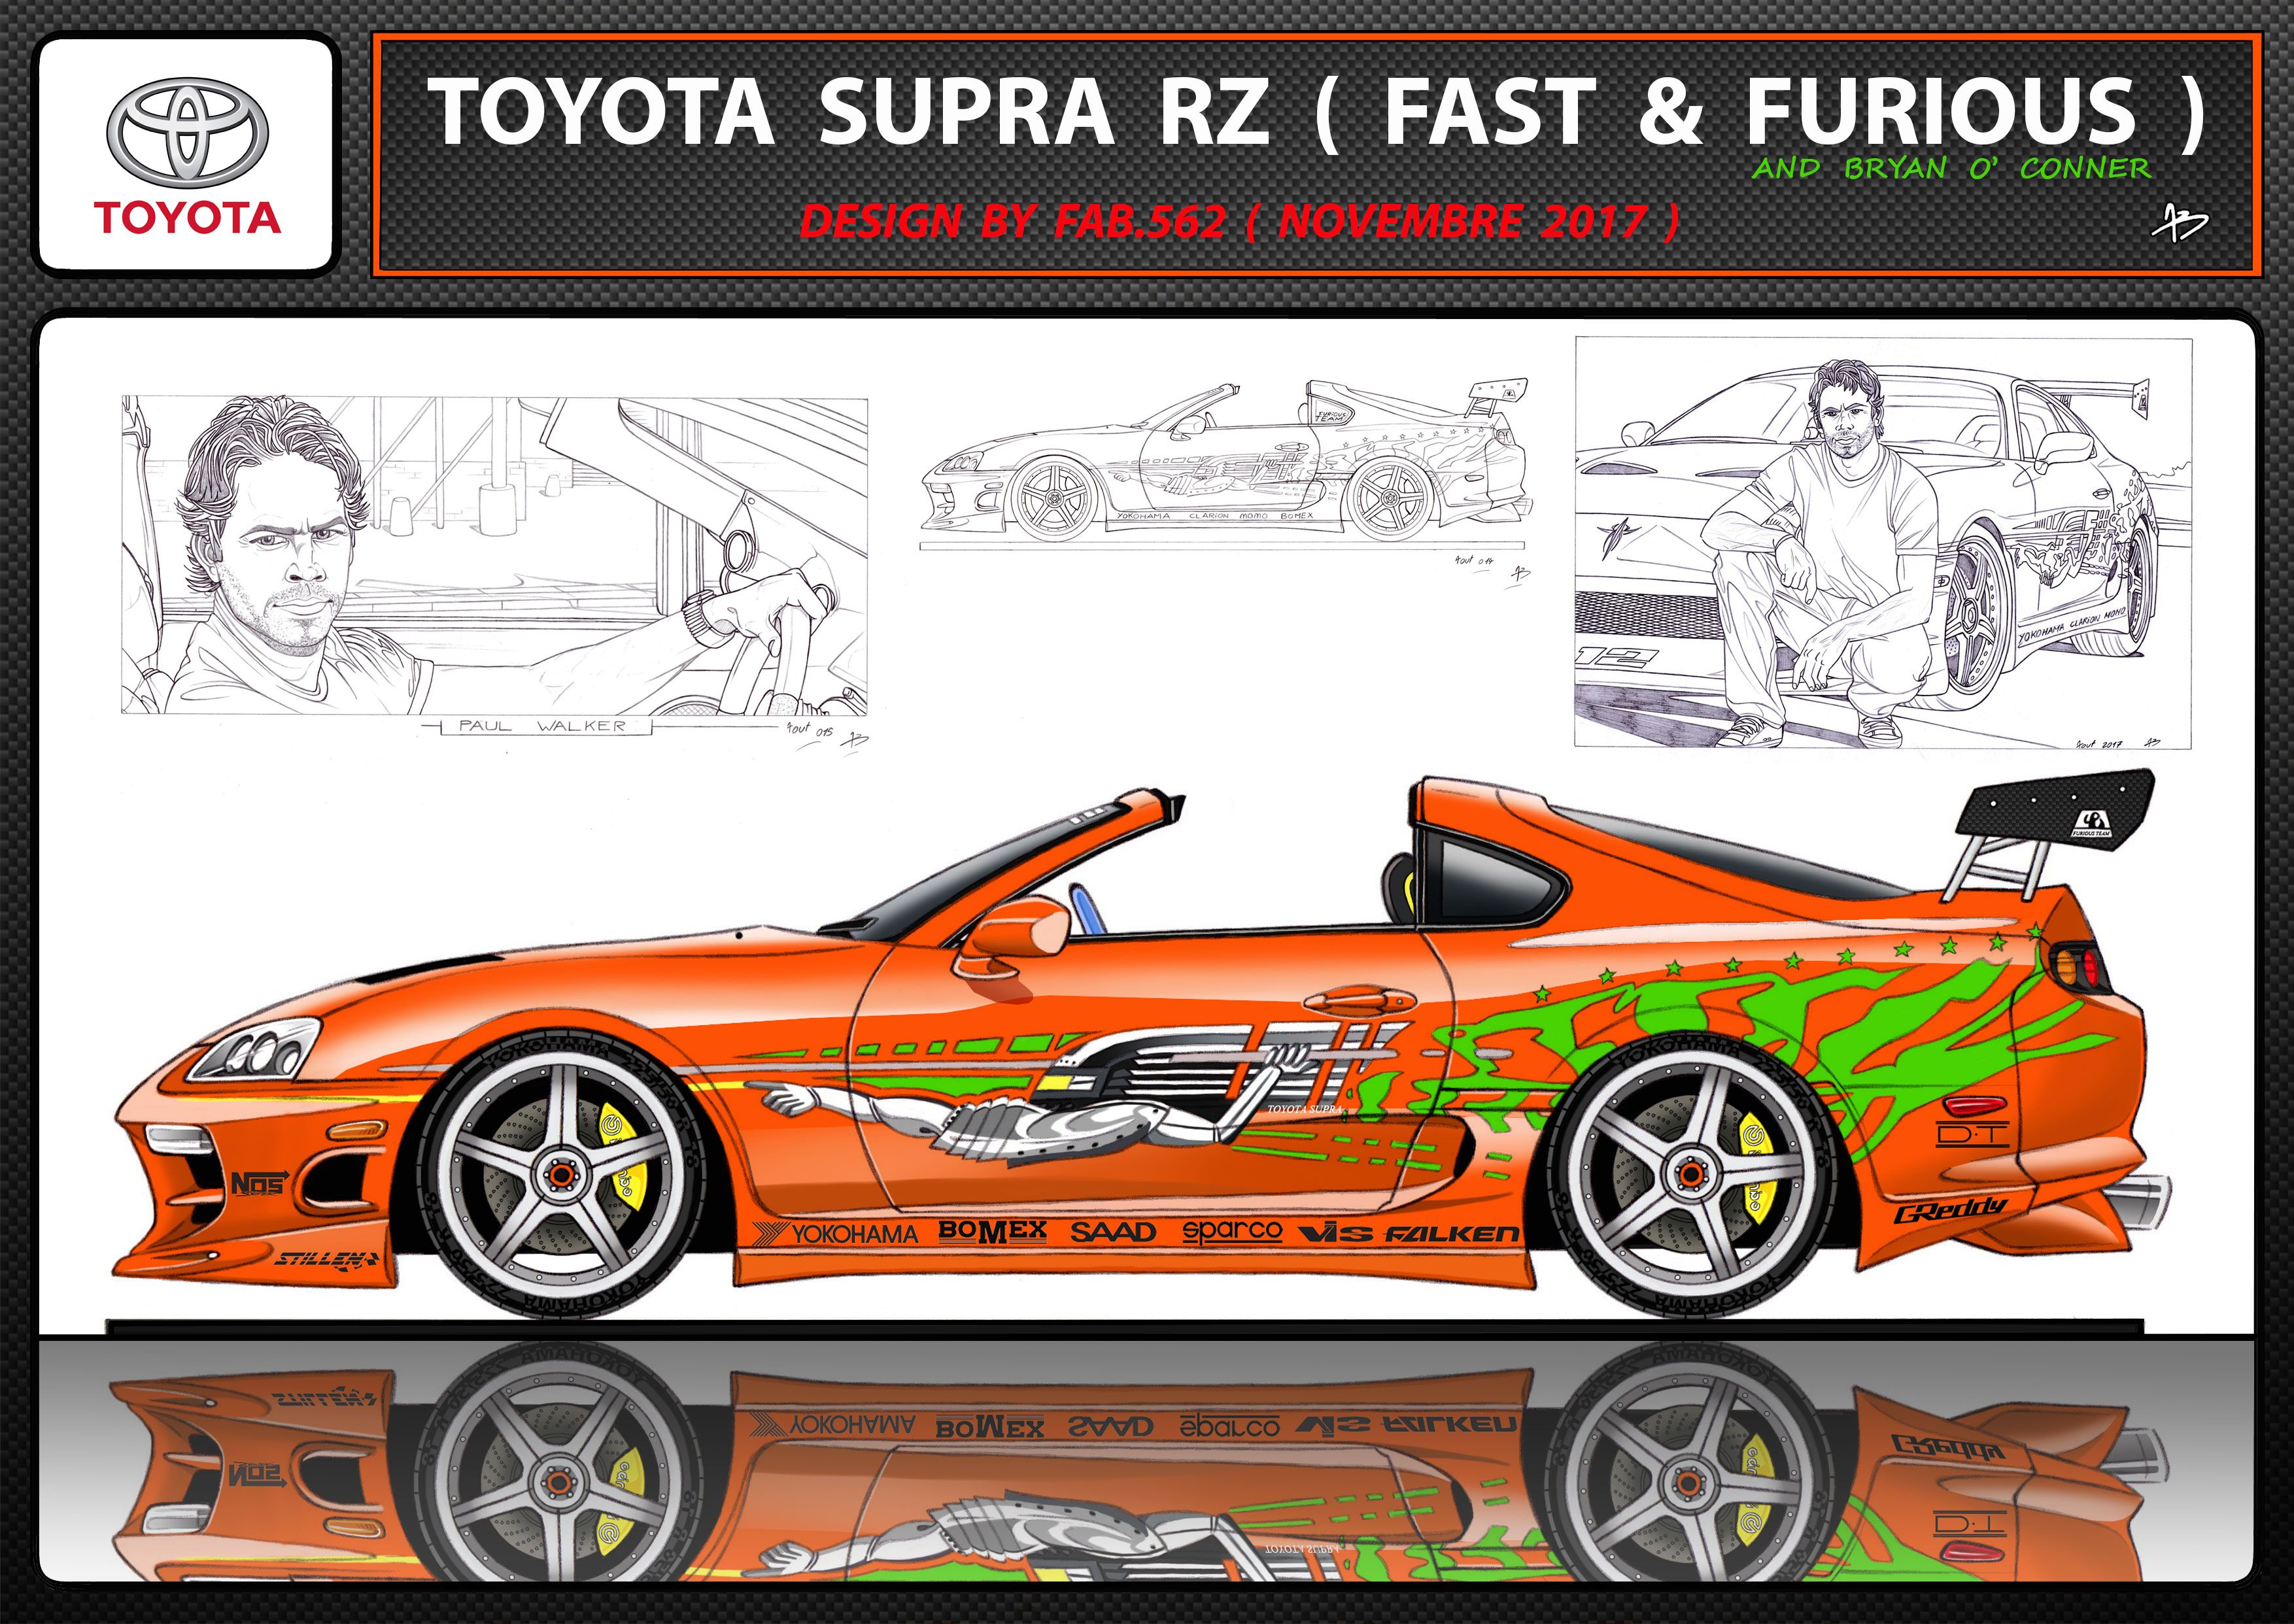 Toyota supra fast and furious paul walker bryan oconner tuning modified cars toyota supra car